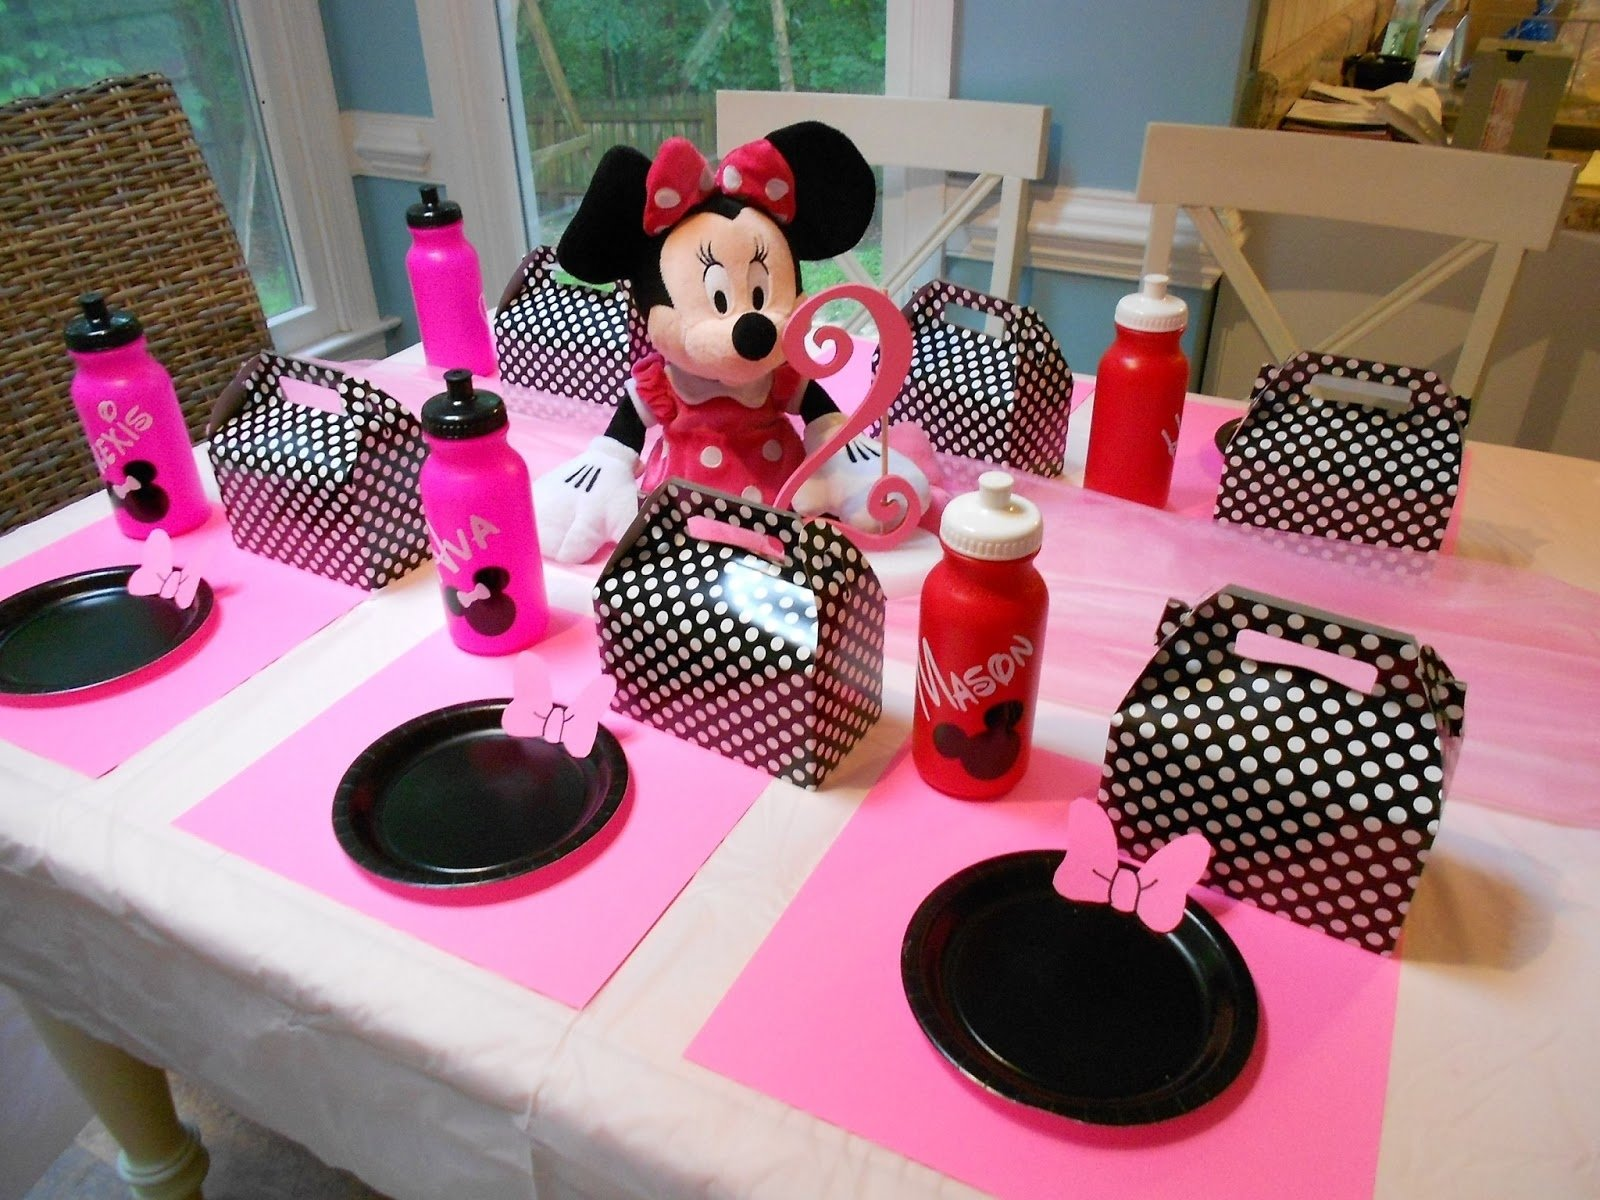 10 Ideal Minnie Mouse Party Ideas Diy minnie mouse birthday ideas diy minnie mouse decoration ideas for